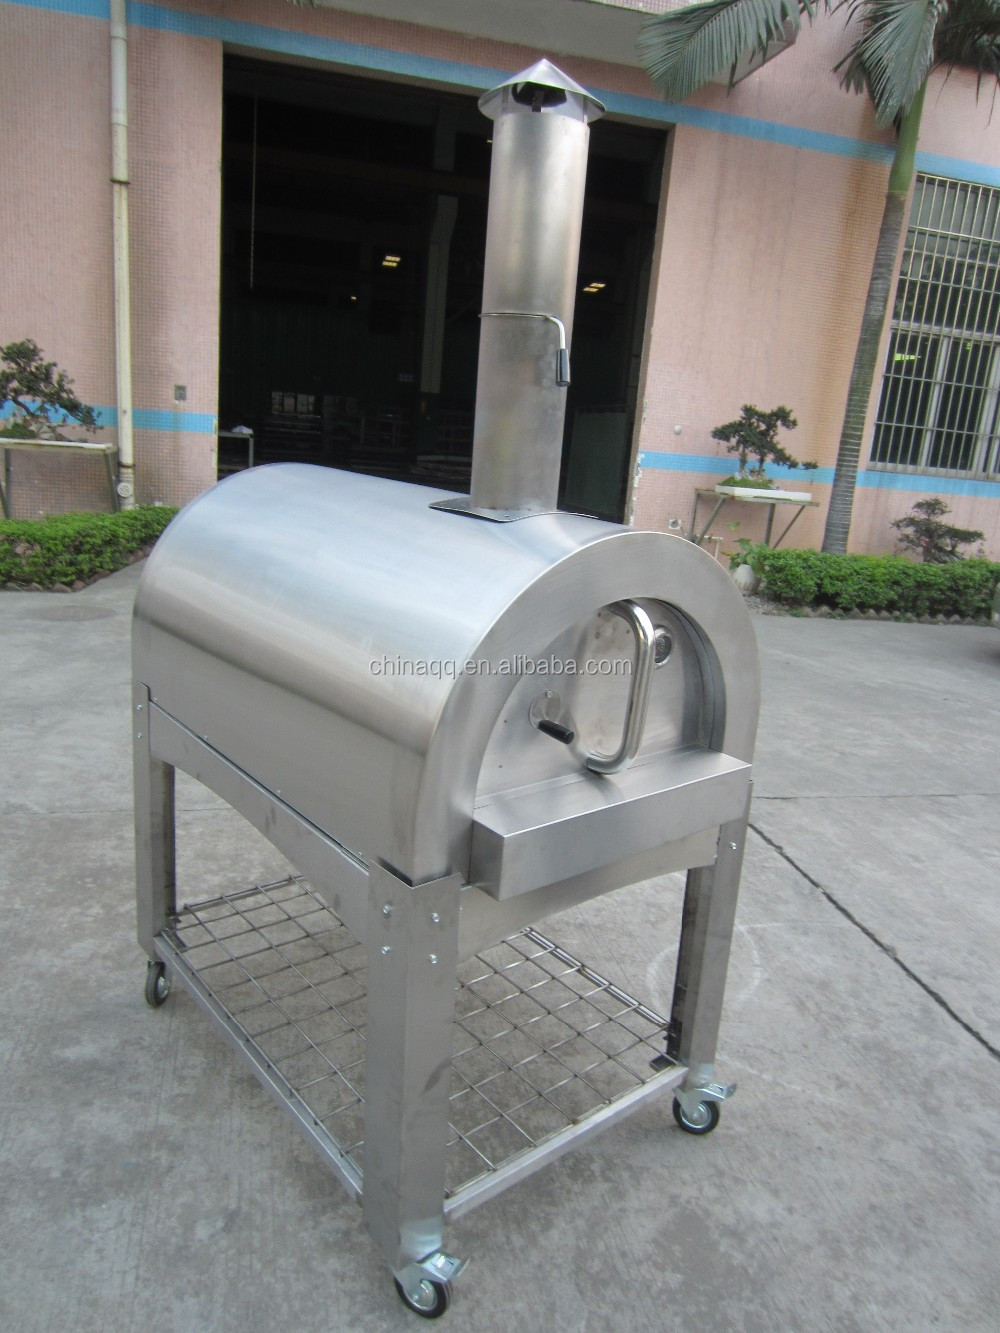 england sale tandoor clay oven baking ovens fashion designed